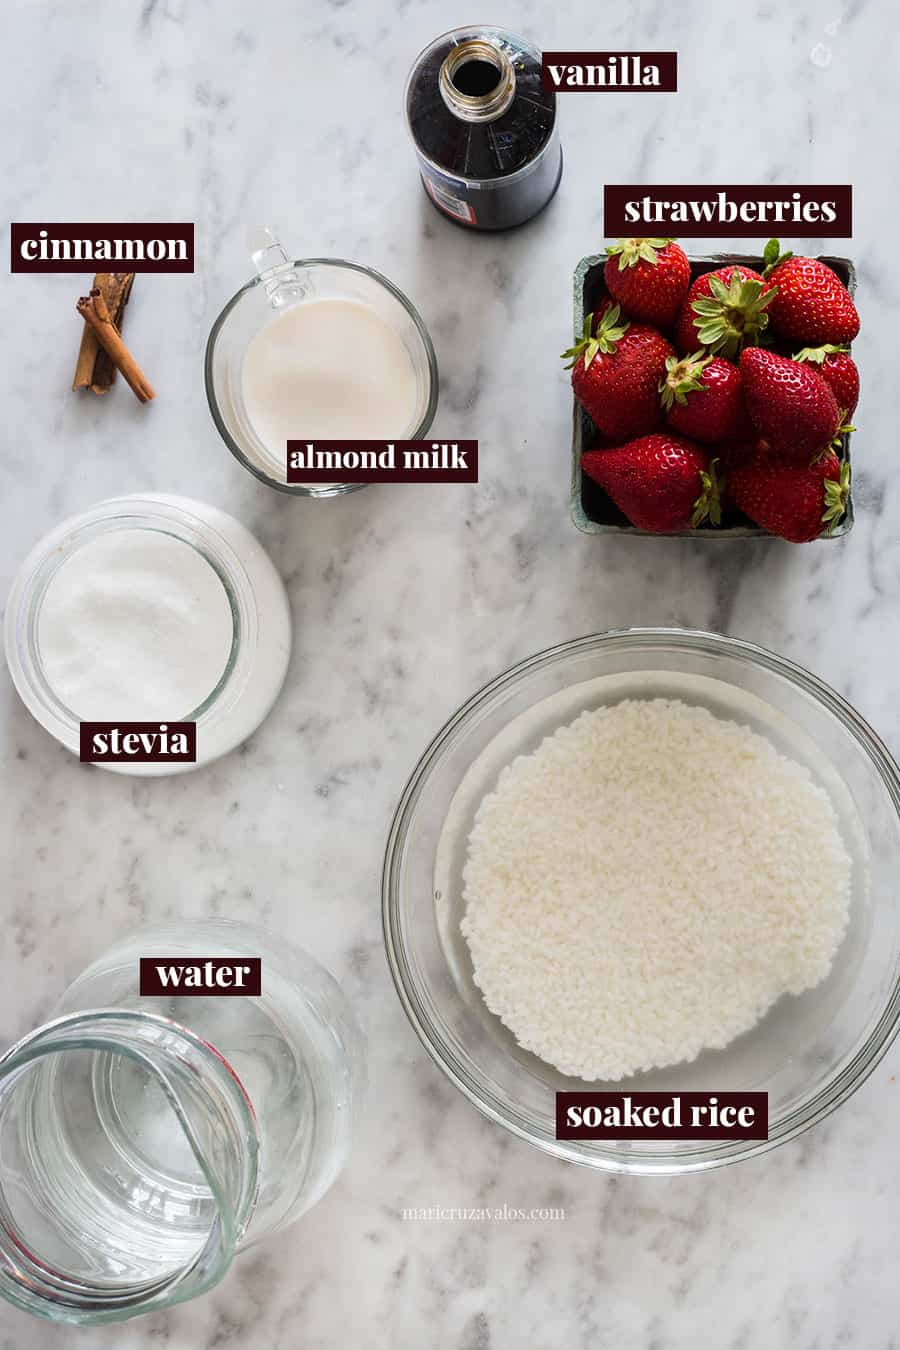 Strawberry horchata ingredients on a marble surface.